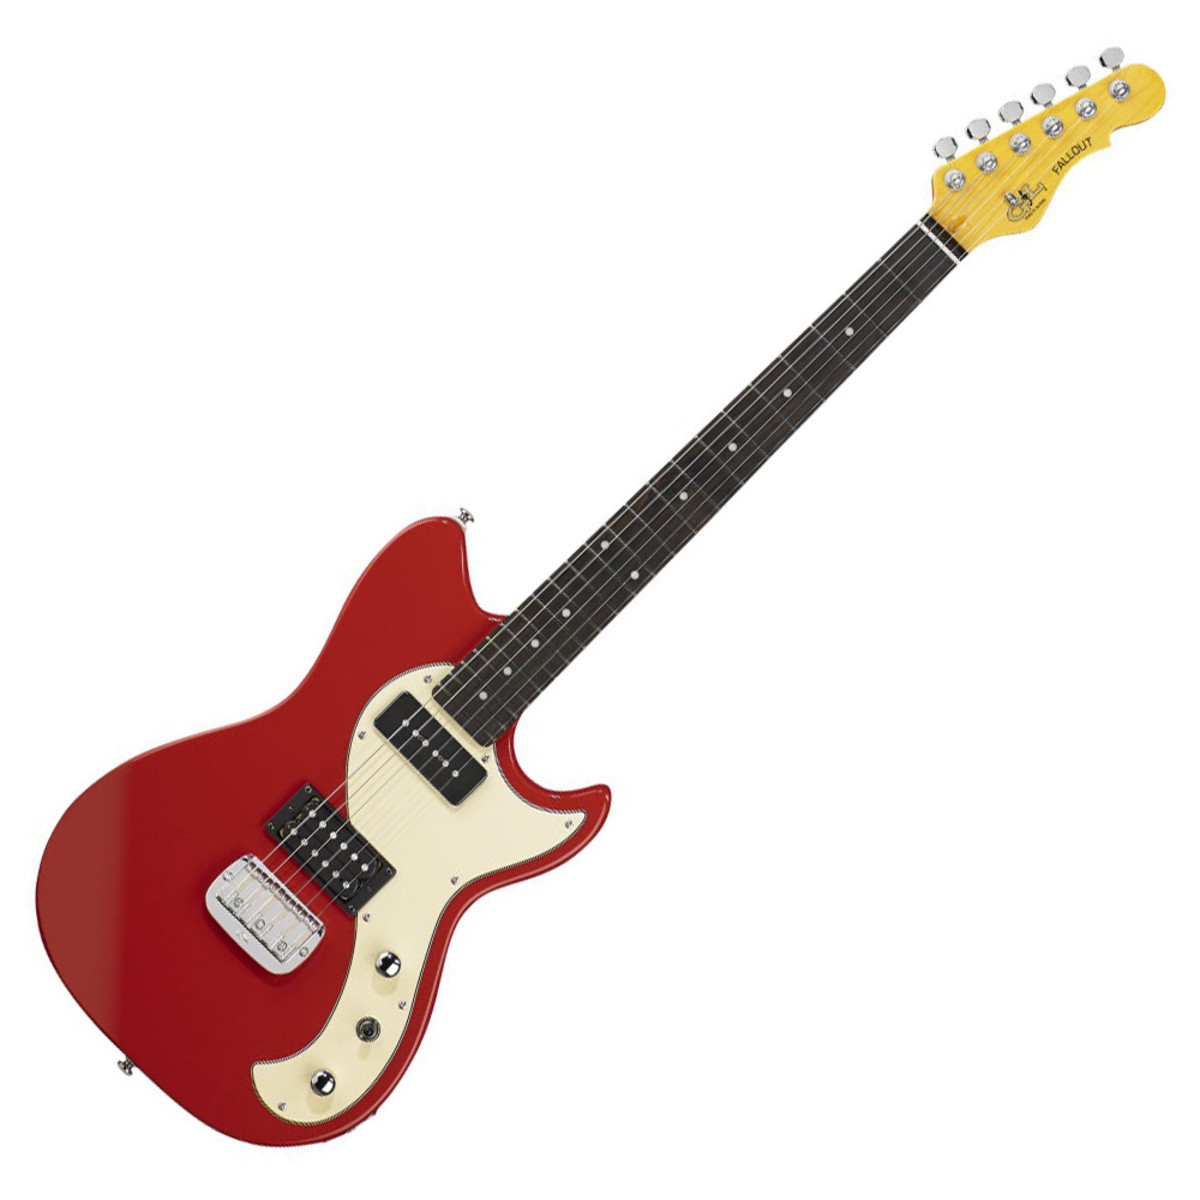 g l tribute fallout electric guitar fullerton red box opened at gear4music. Black Bedroom Furniture Sets. Home Design Ideas